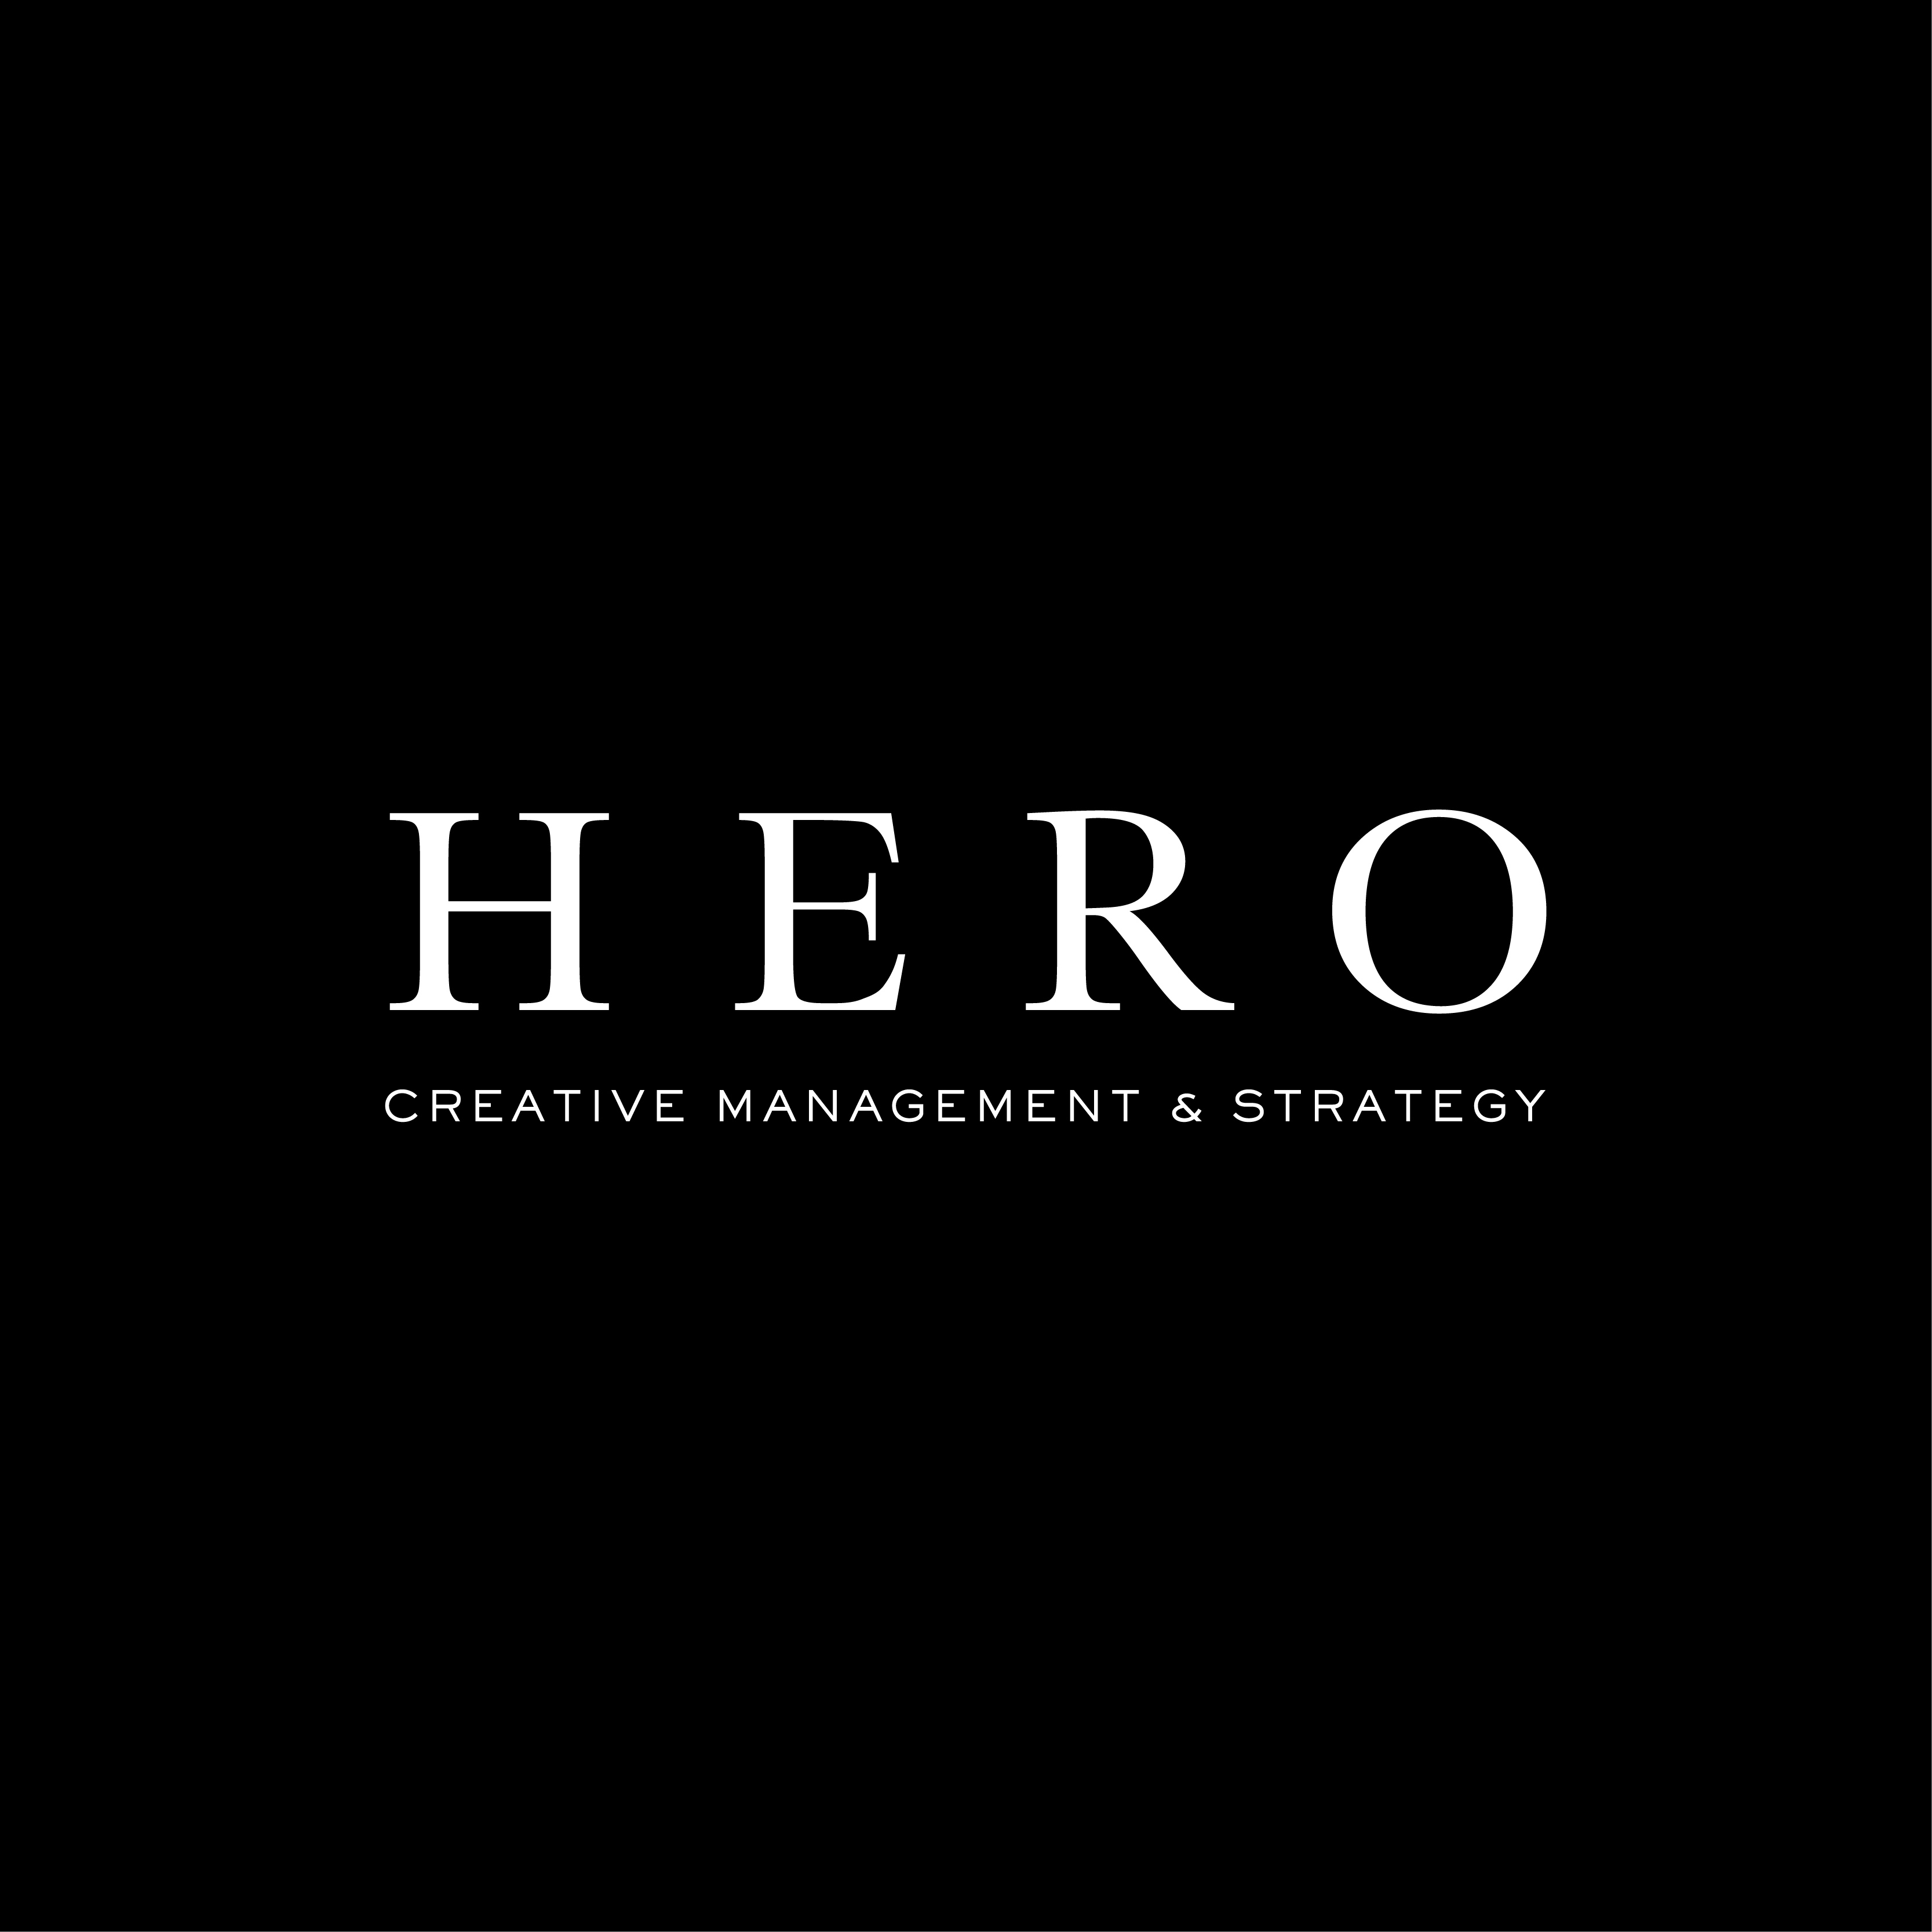 HERO Launches for Sales and Talent Management